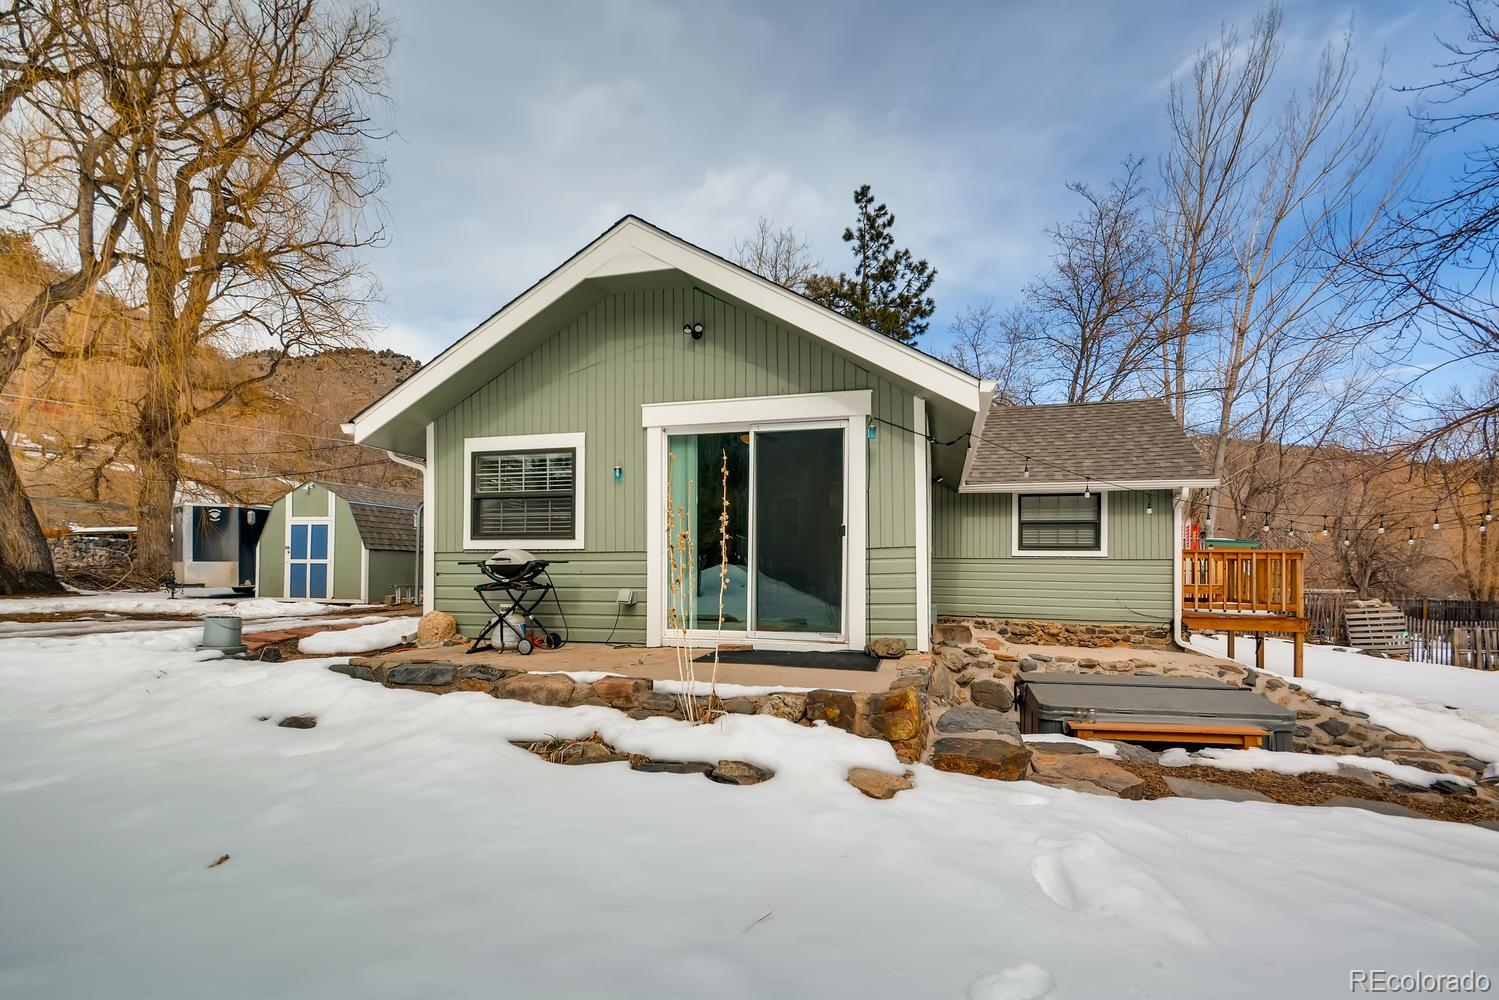 MLS# 7169147 - 6 - 22018 Miller Lane, Idledale, CO 80453